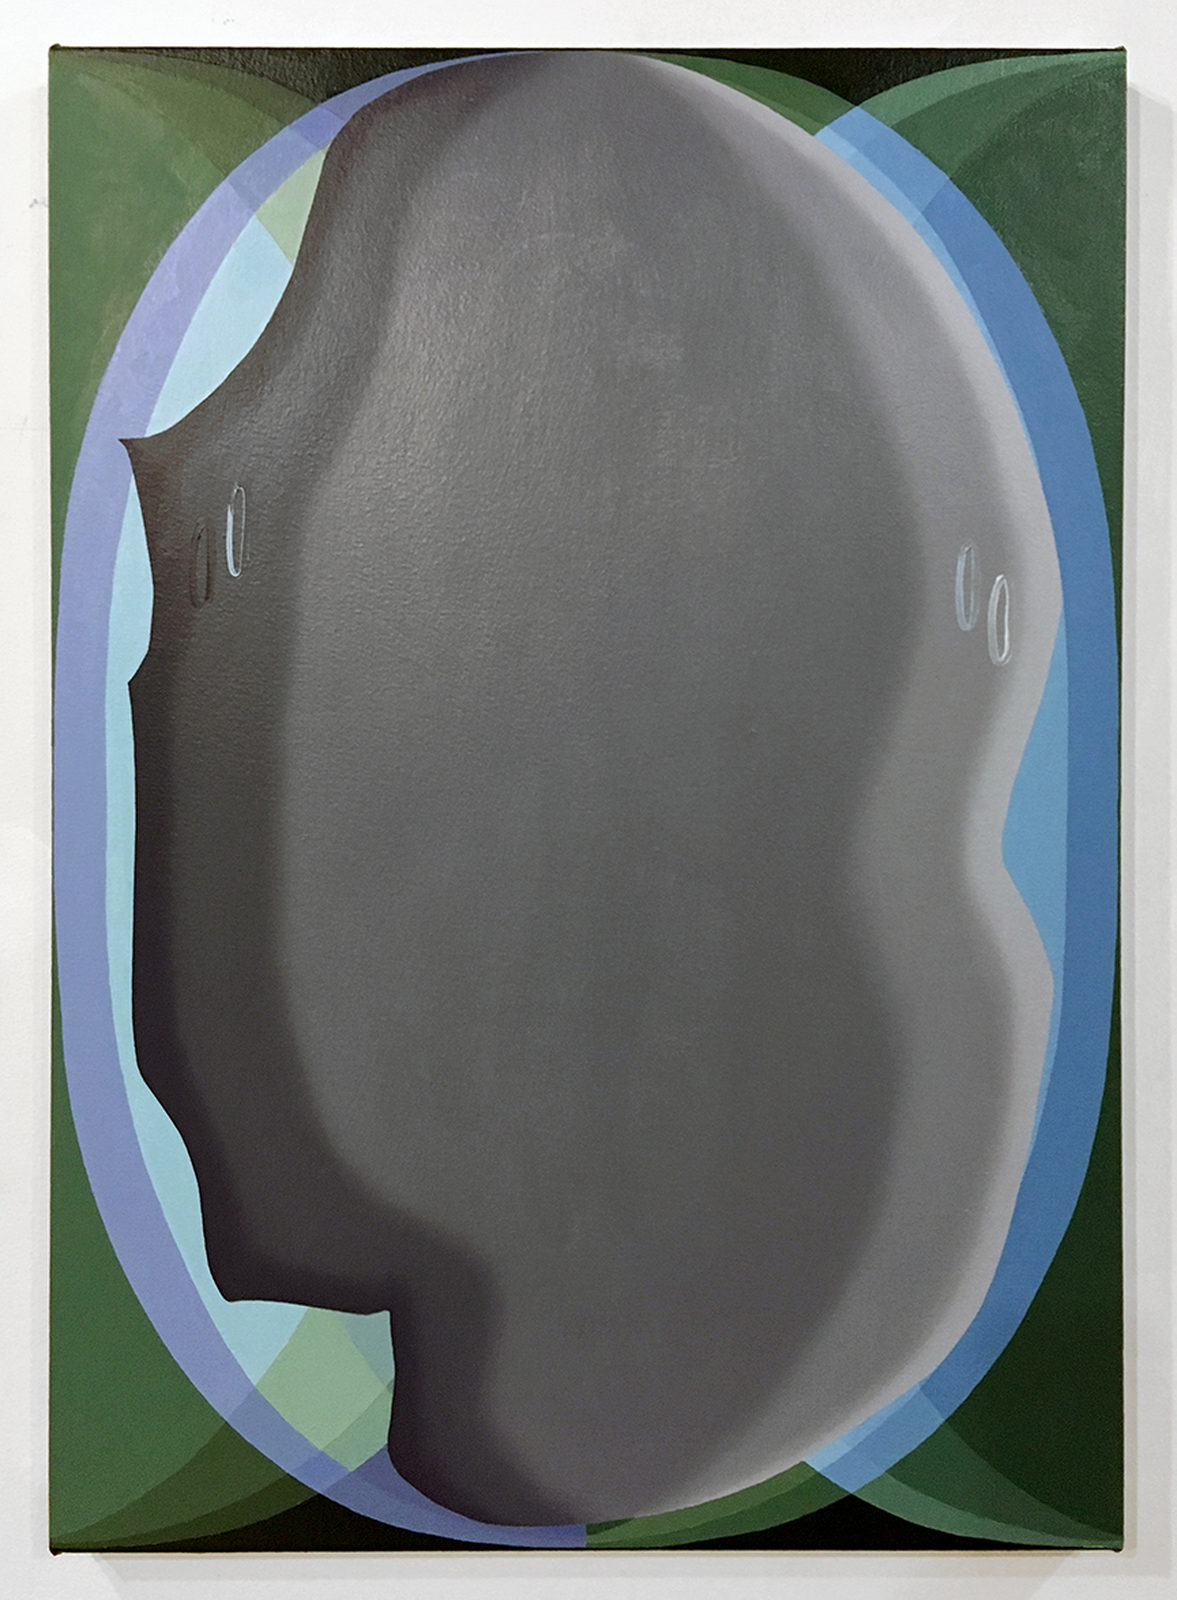 Heather Guertin, A Grey Appearance, not touching